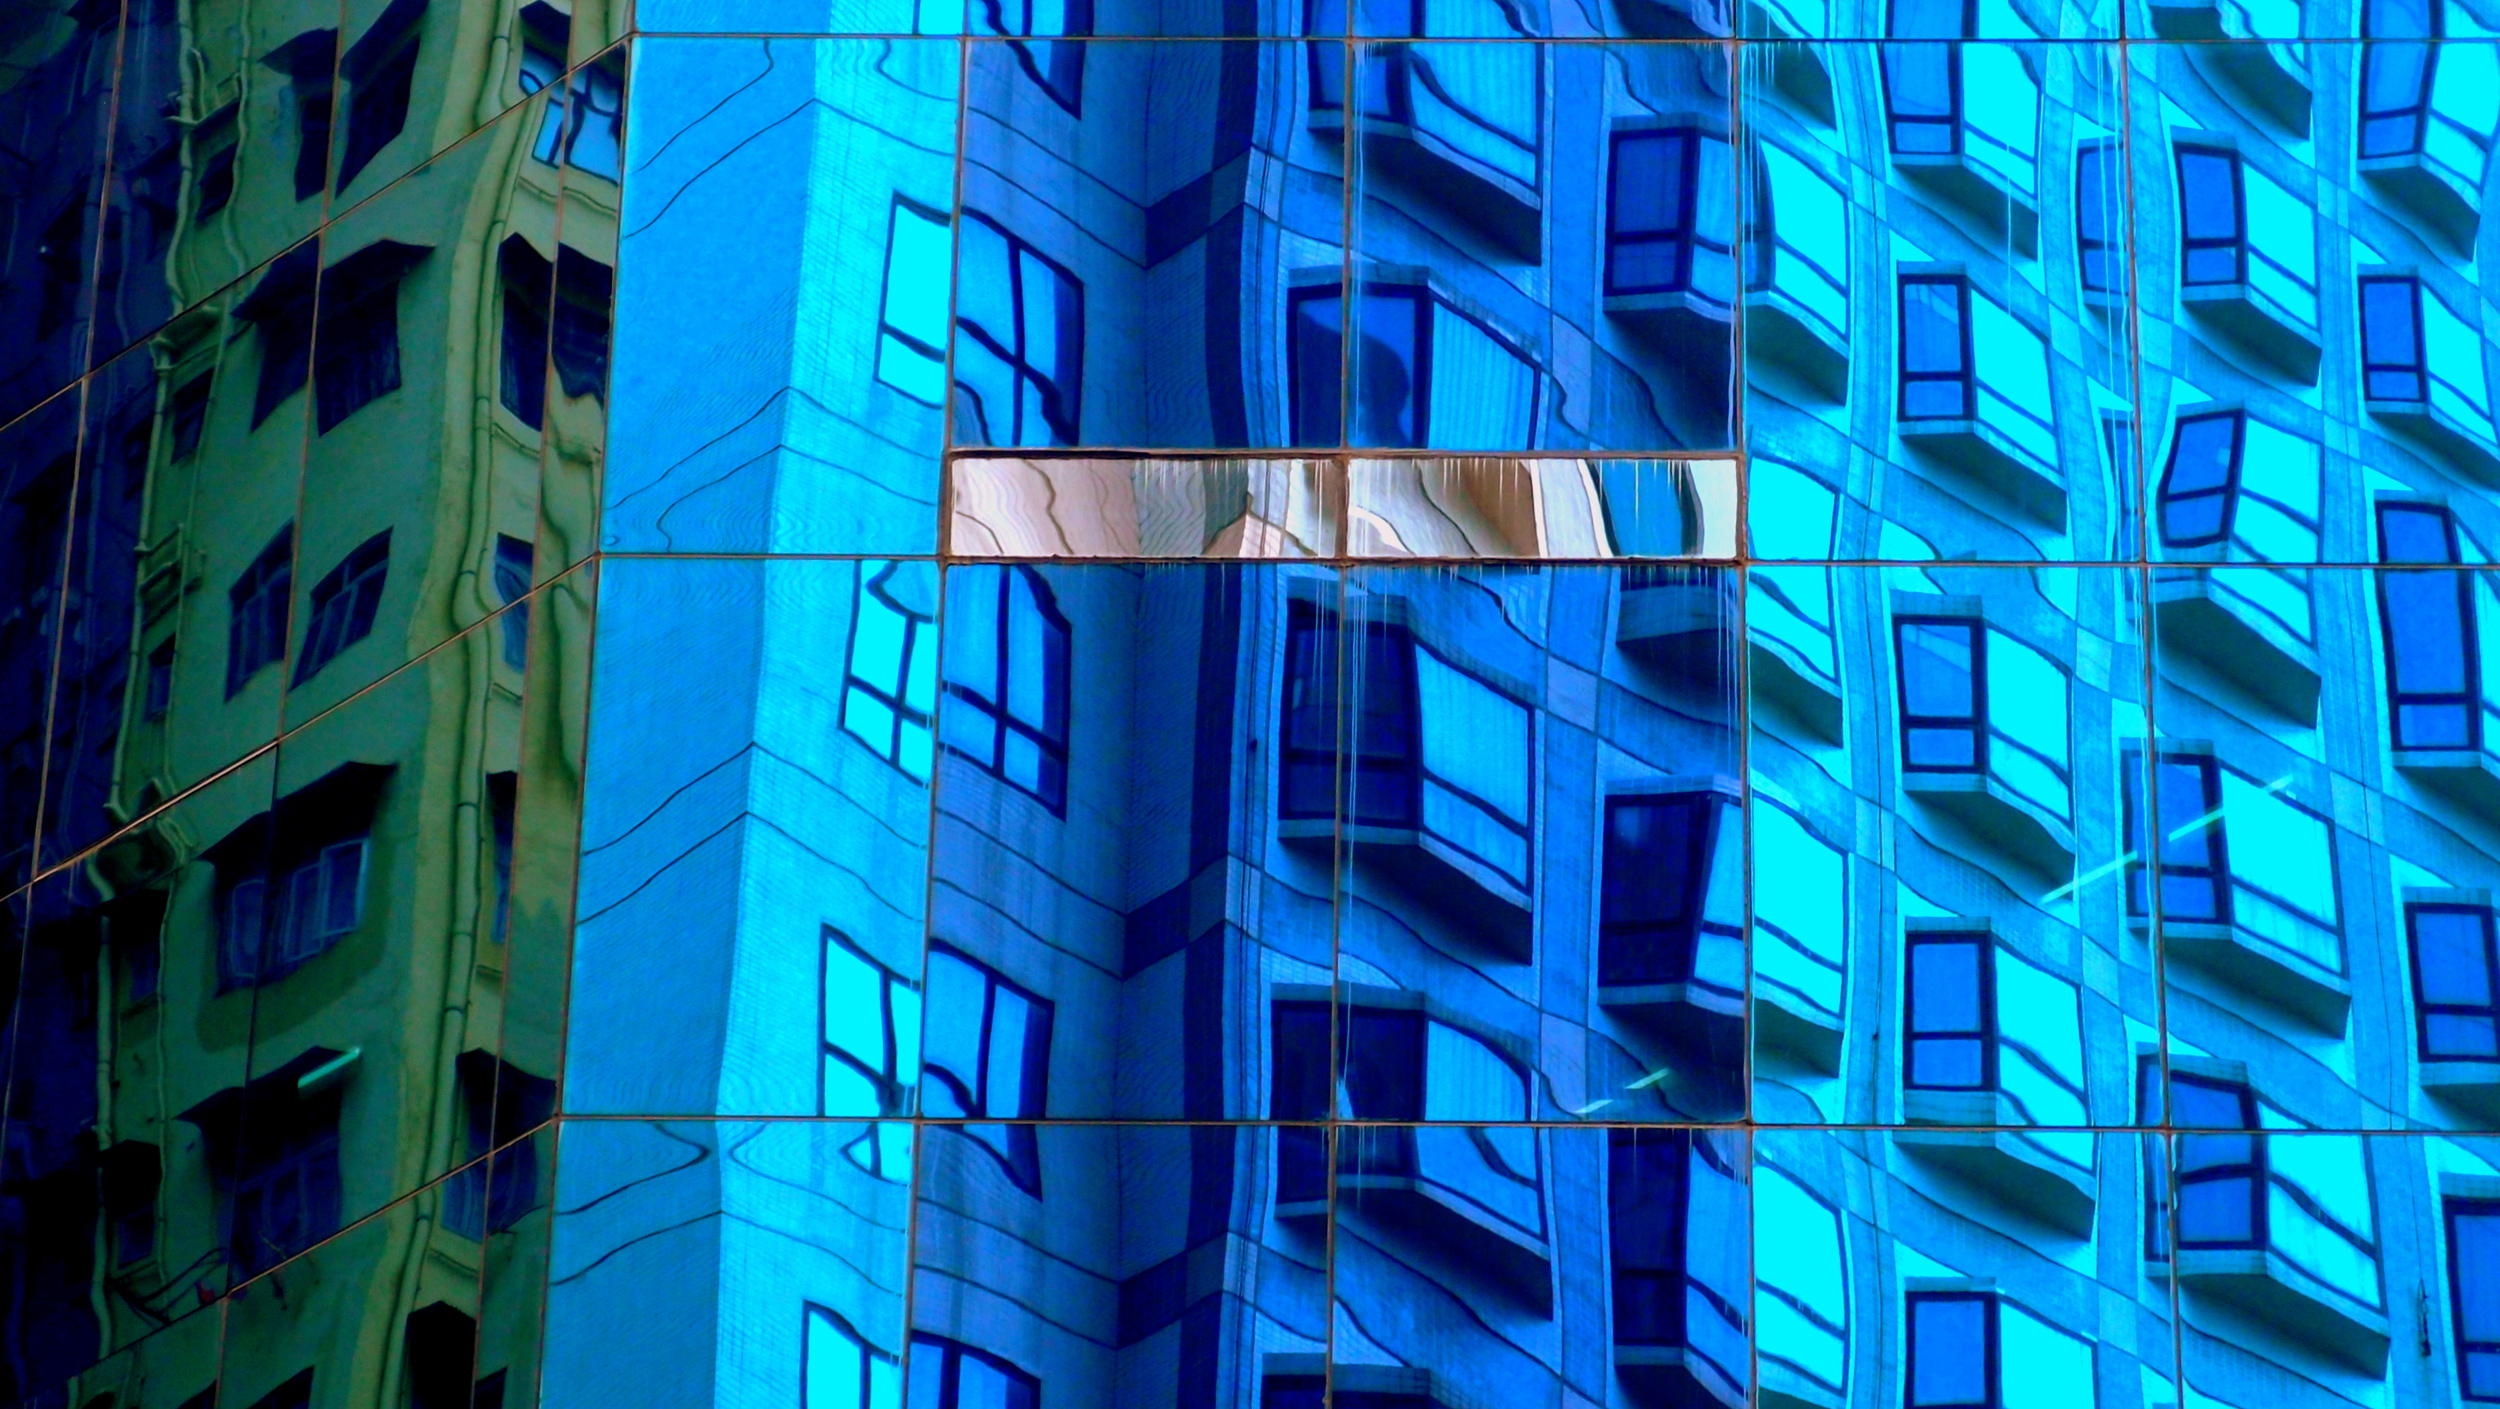 An arty farty building reflection